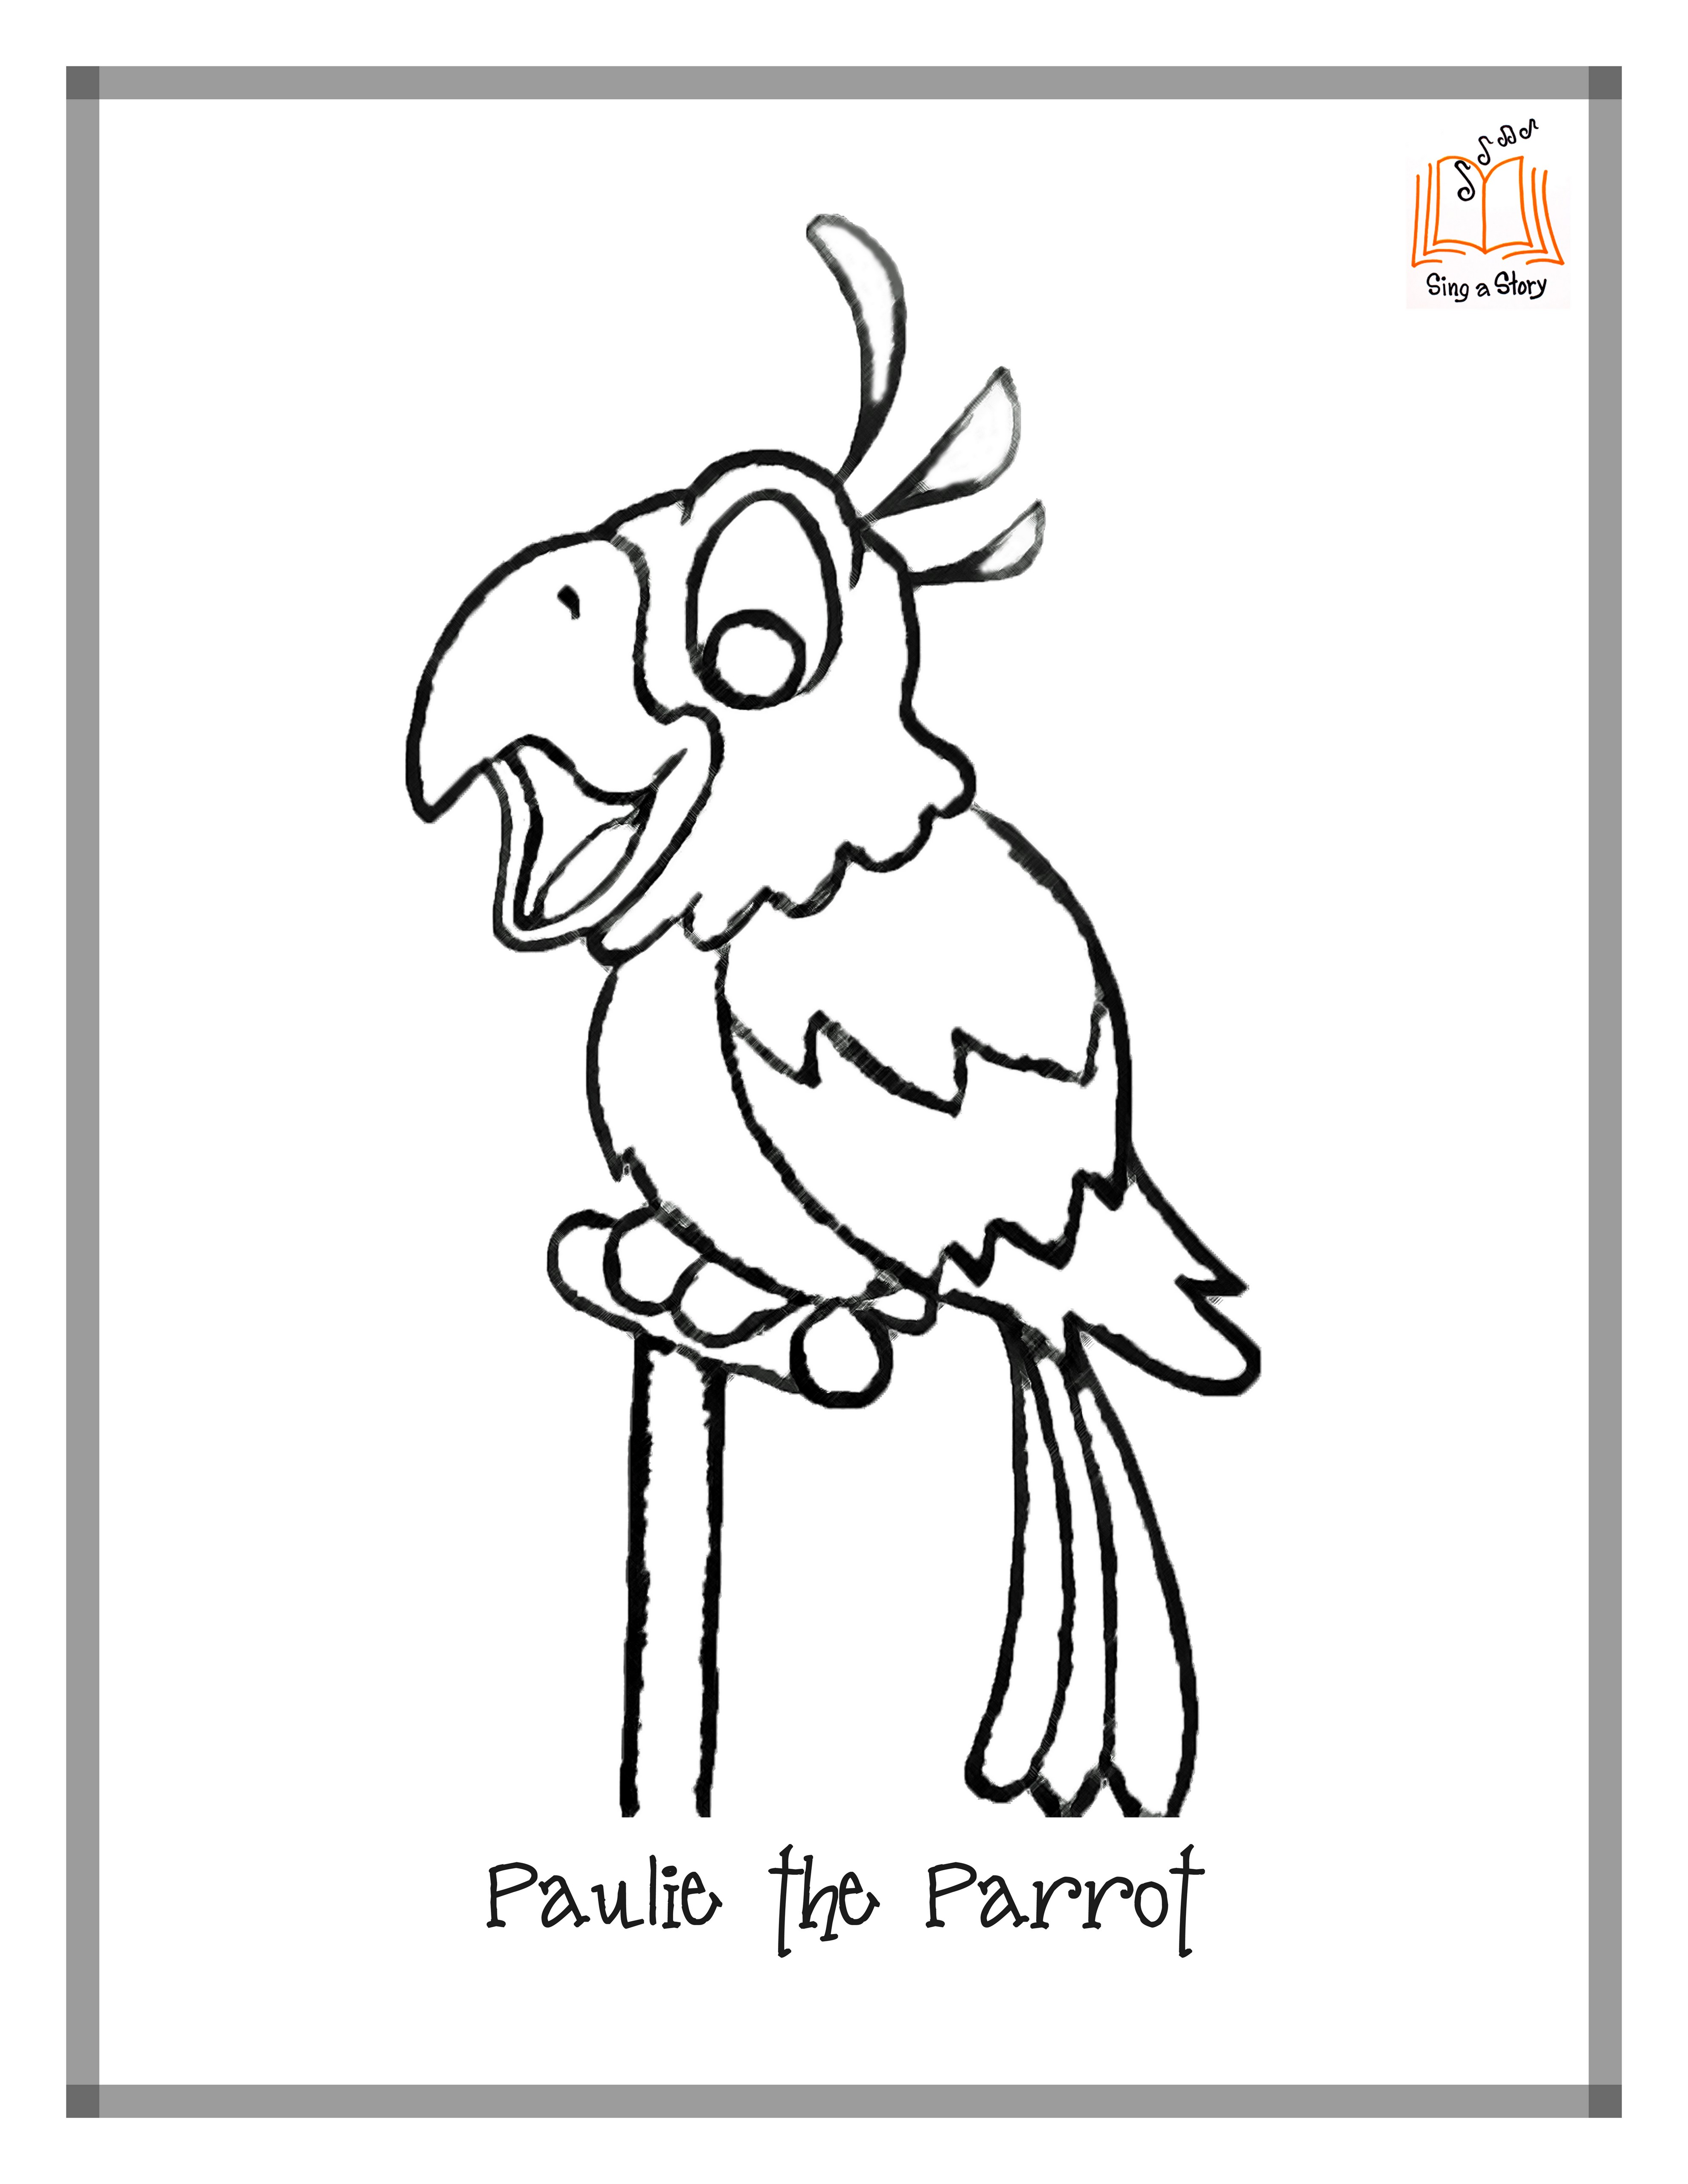 pirate parrot coloring pages pirate parrot drawing at getdrawings free download pages parrot pirate coloring